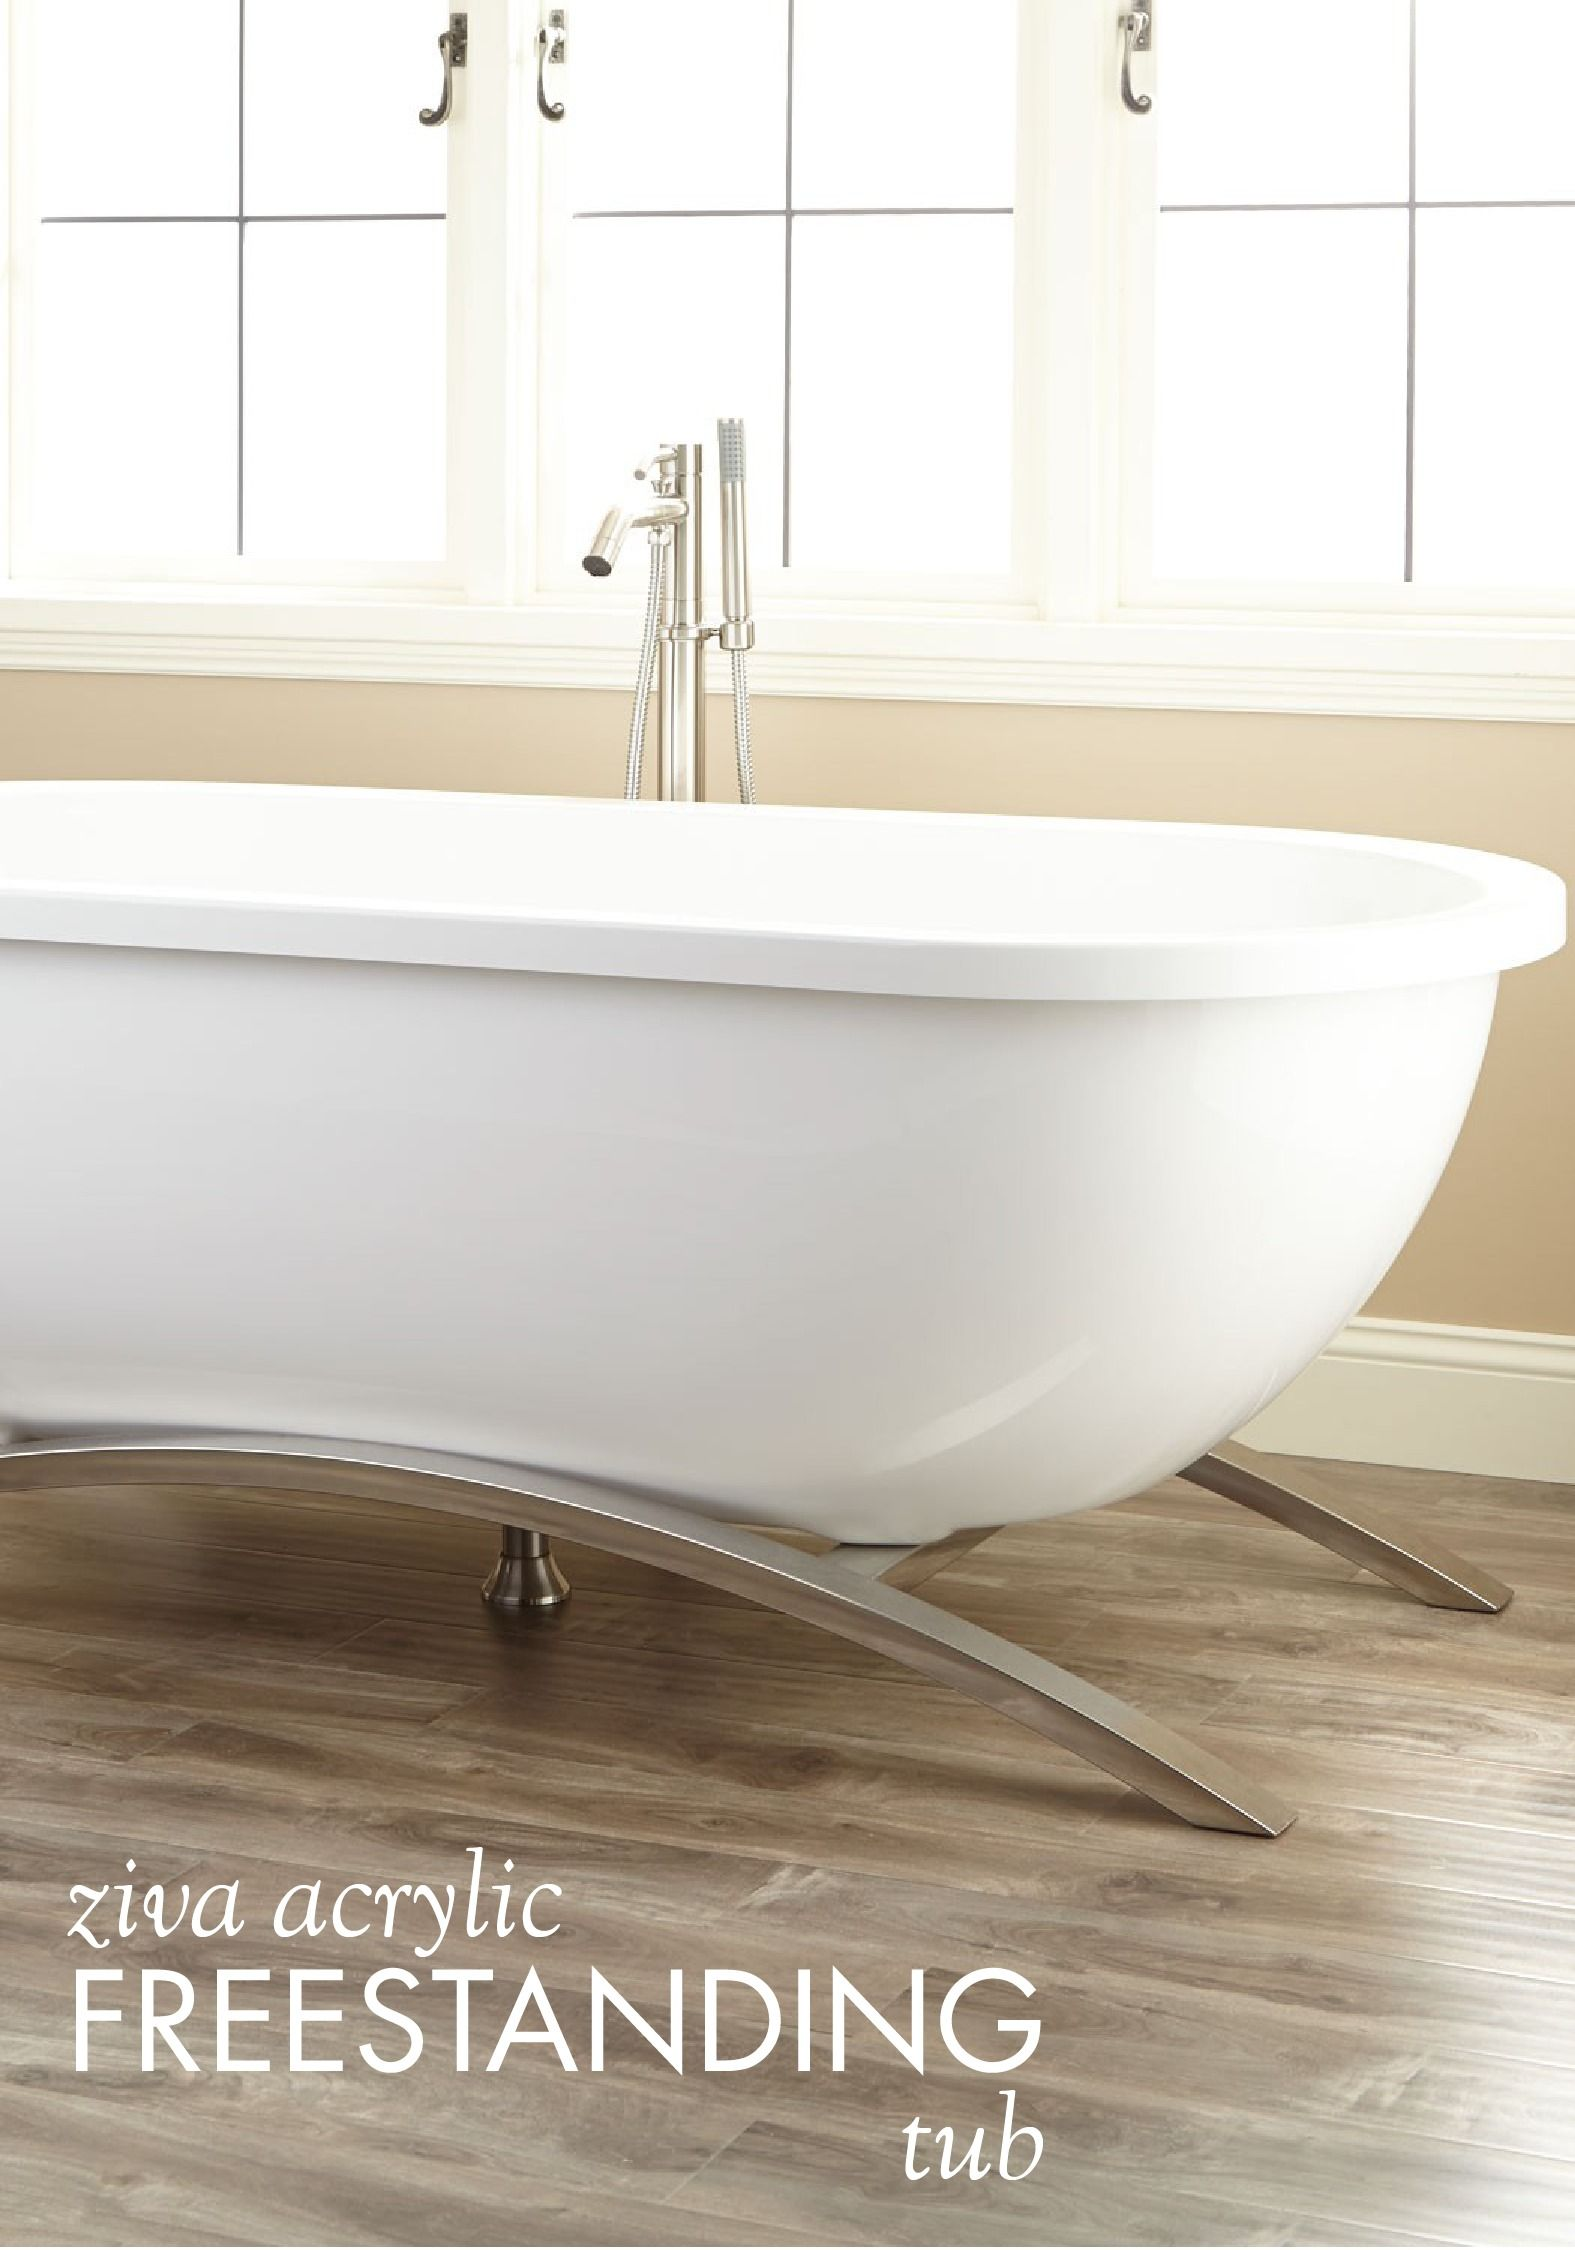 This Elegant Acrylic Freestanding Tub Is Supported By Sturdy Curved Metal Legs This Design Allows You To Recline On Either End Making This The Most Luxurious B